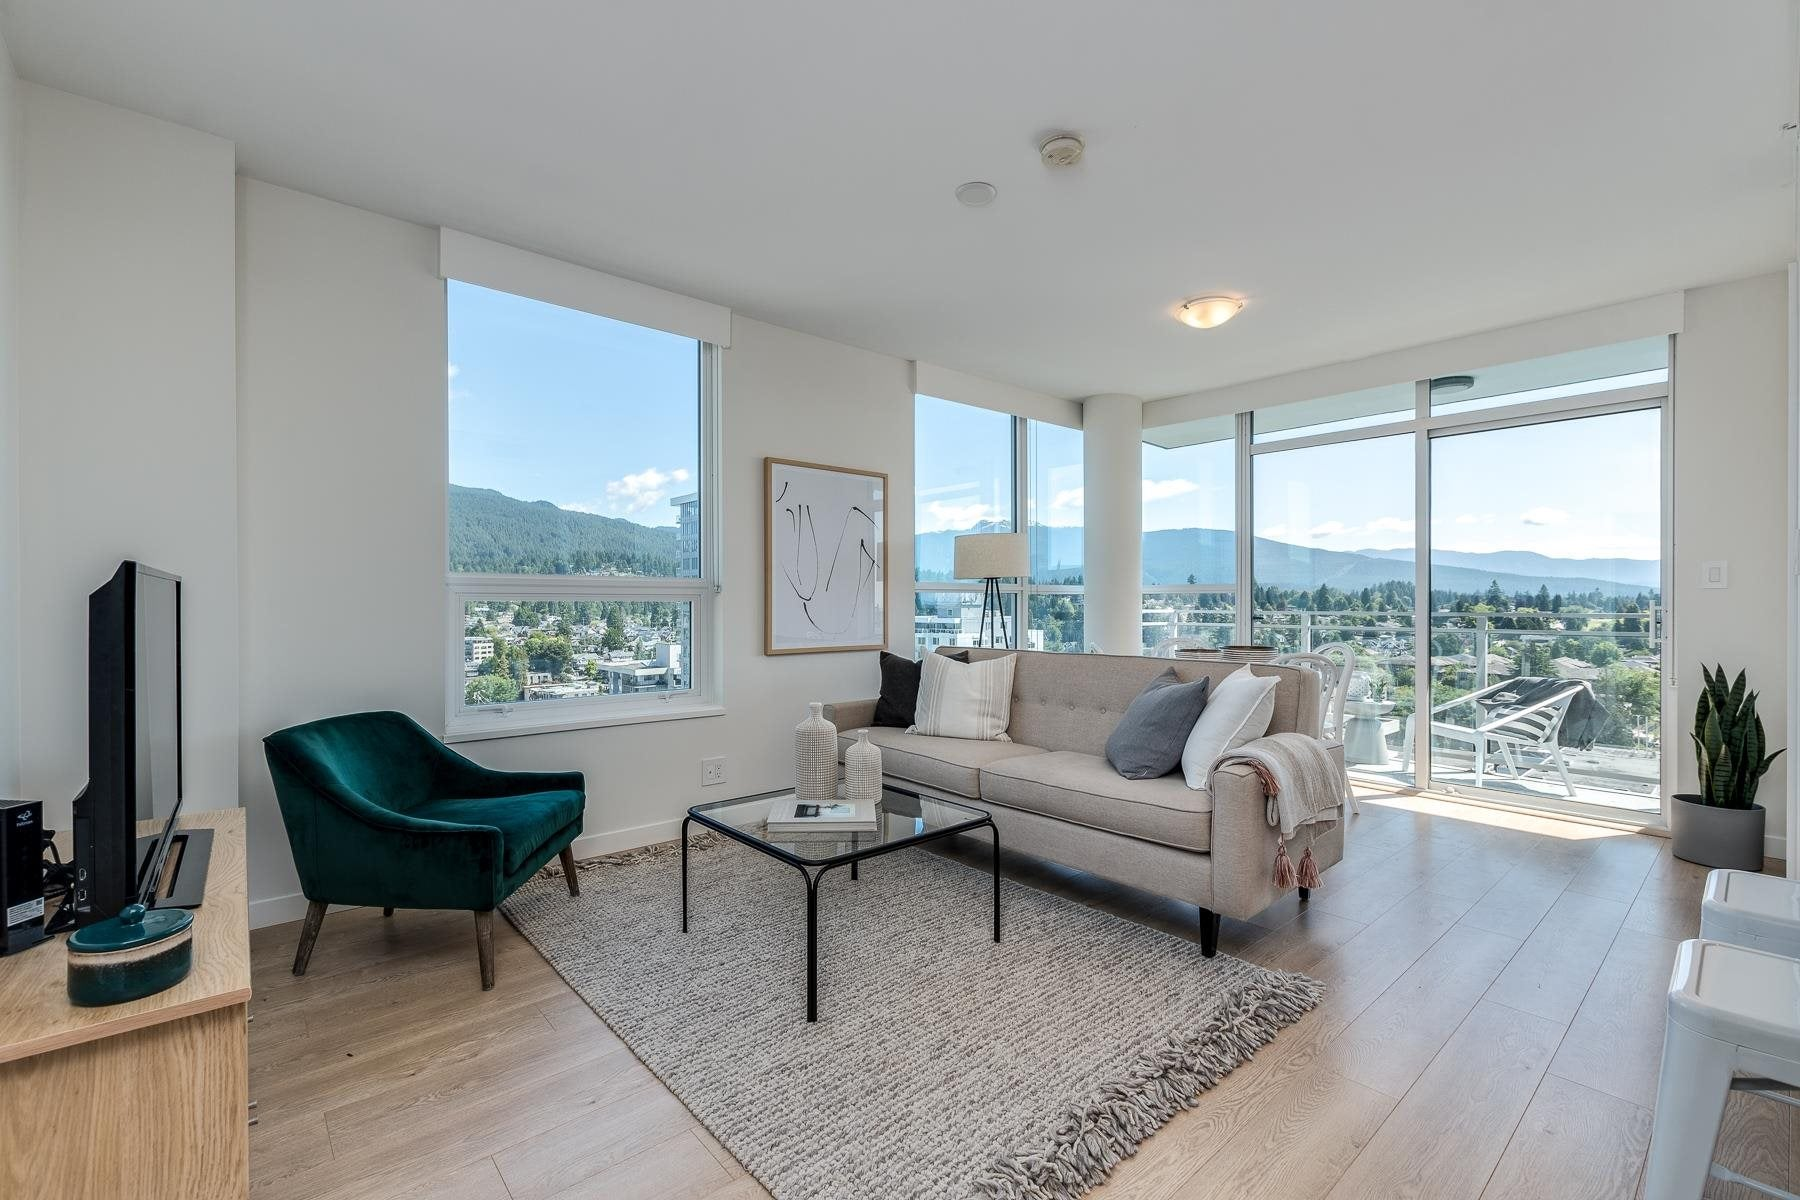 1809 125 E 14TH STREET - Central Lonsdale Apartment/Condo for sale, 2 Bedrooms (R2594384) - #1